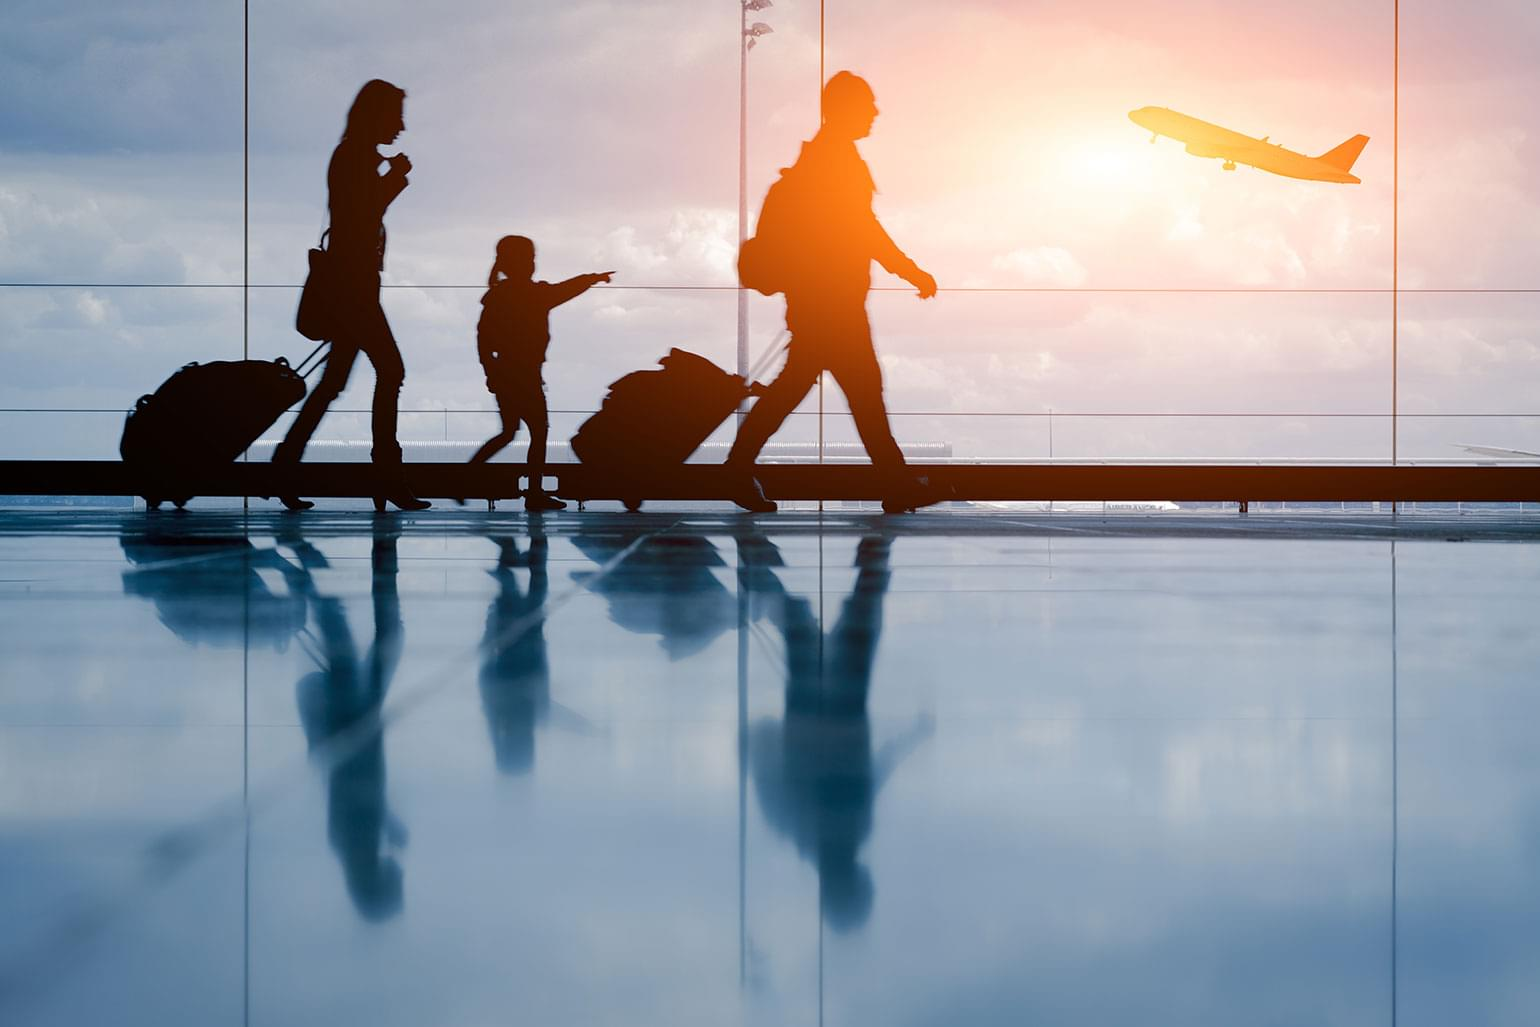 Silhouette of young family with luggage and airplane walking to their gate.